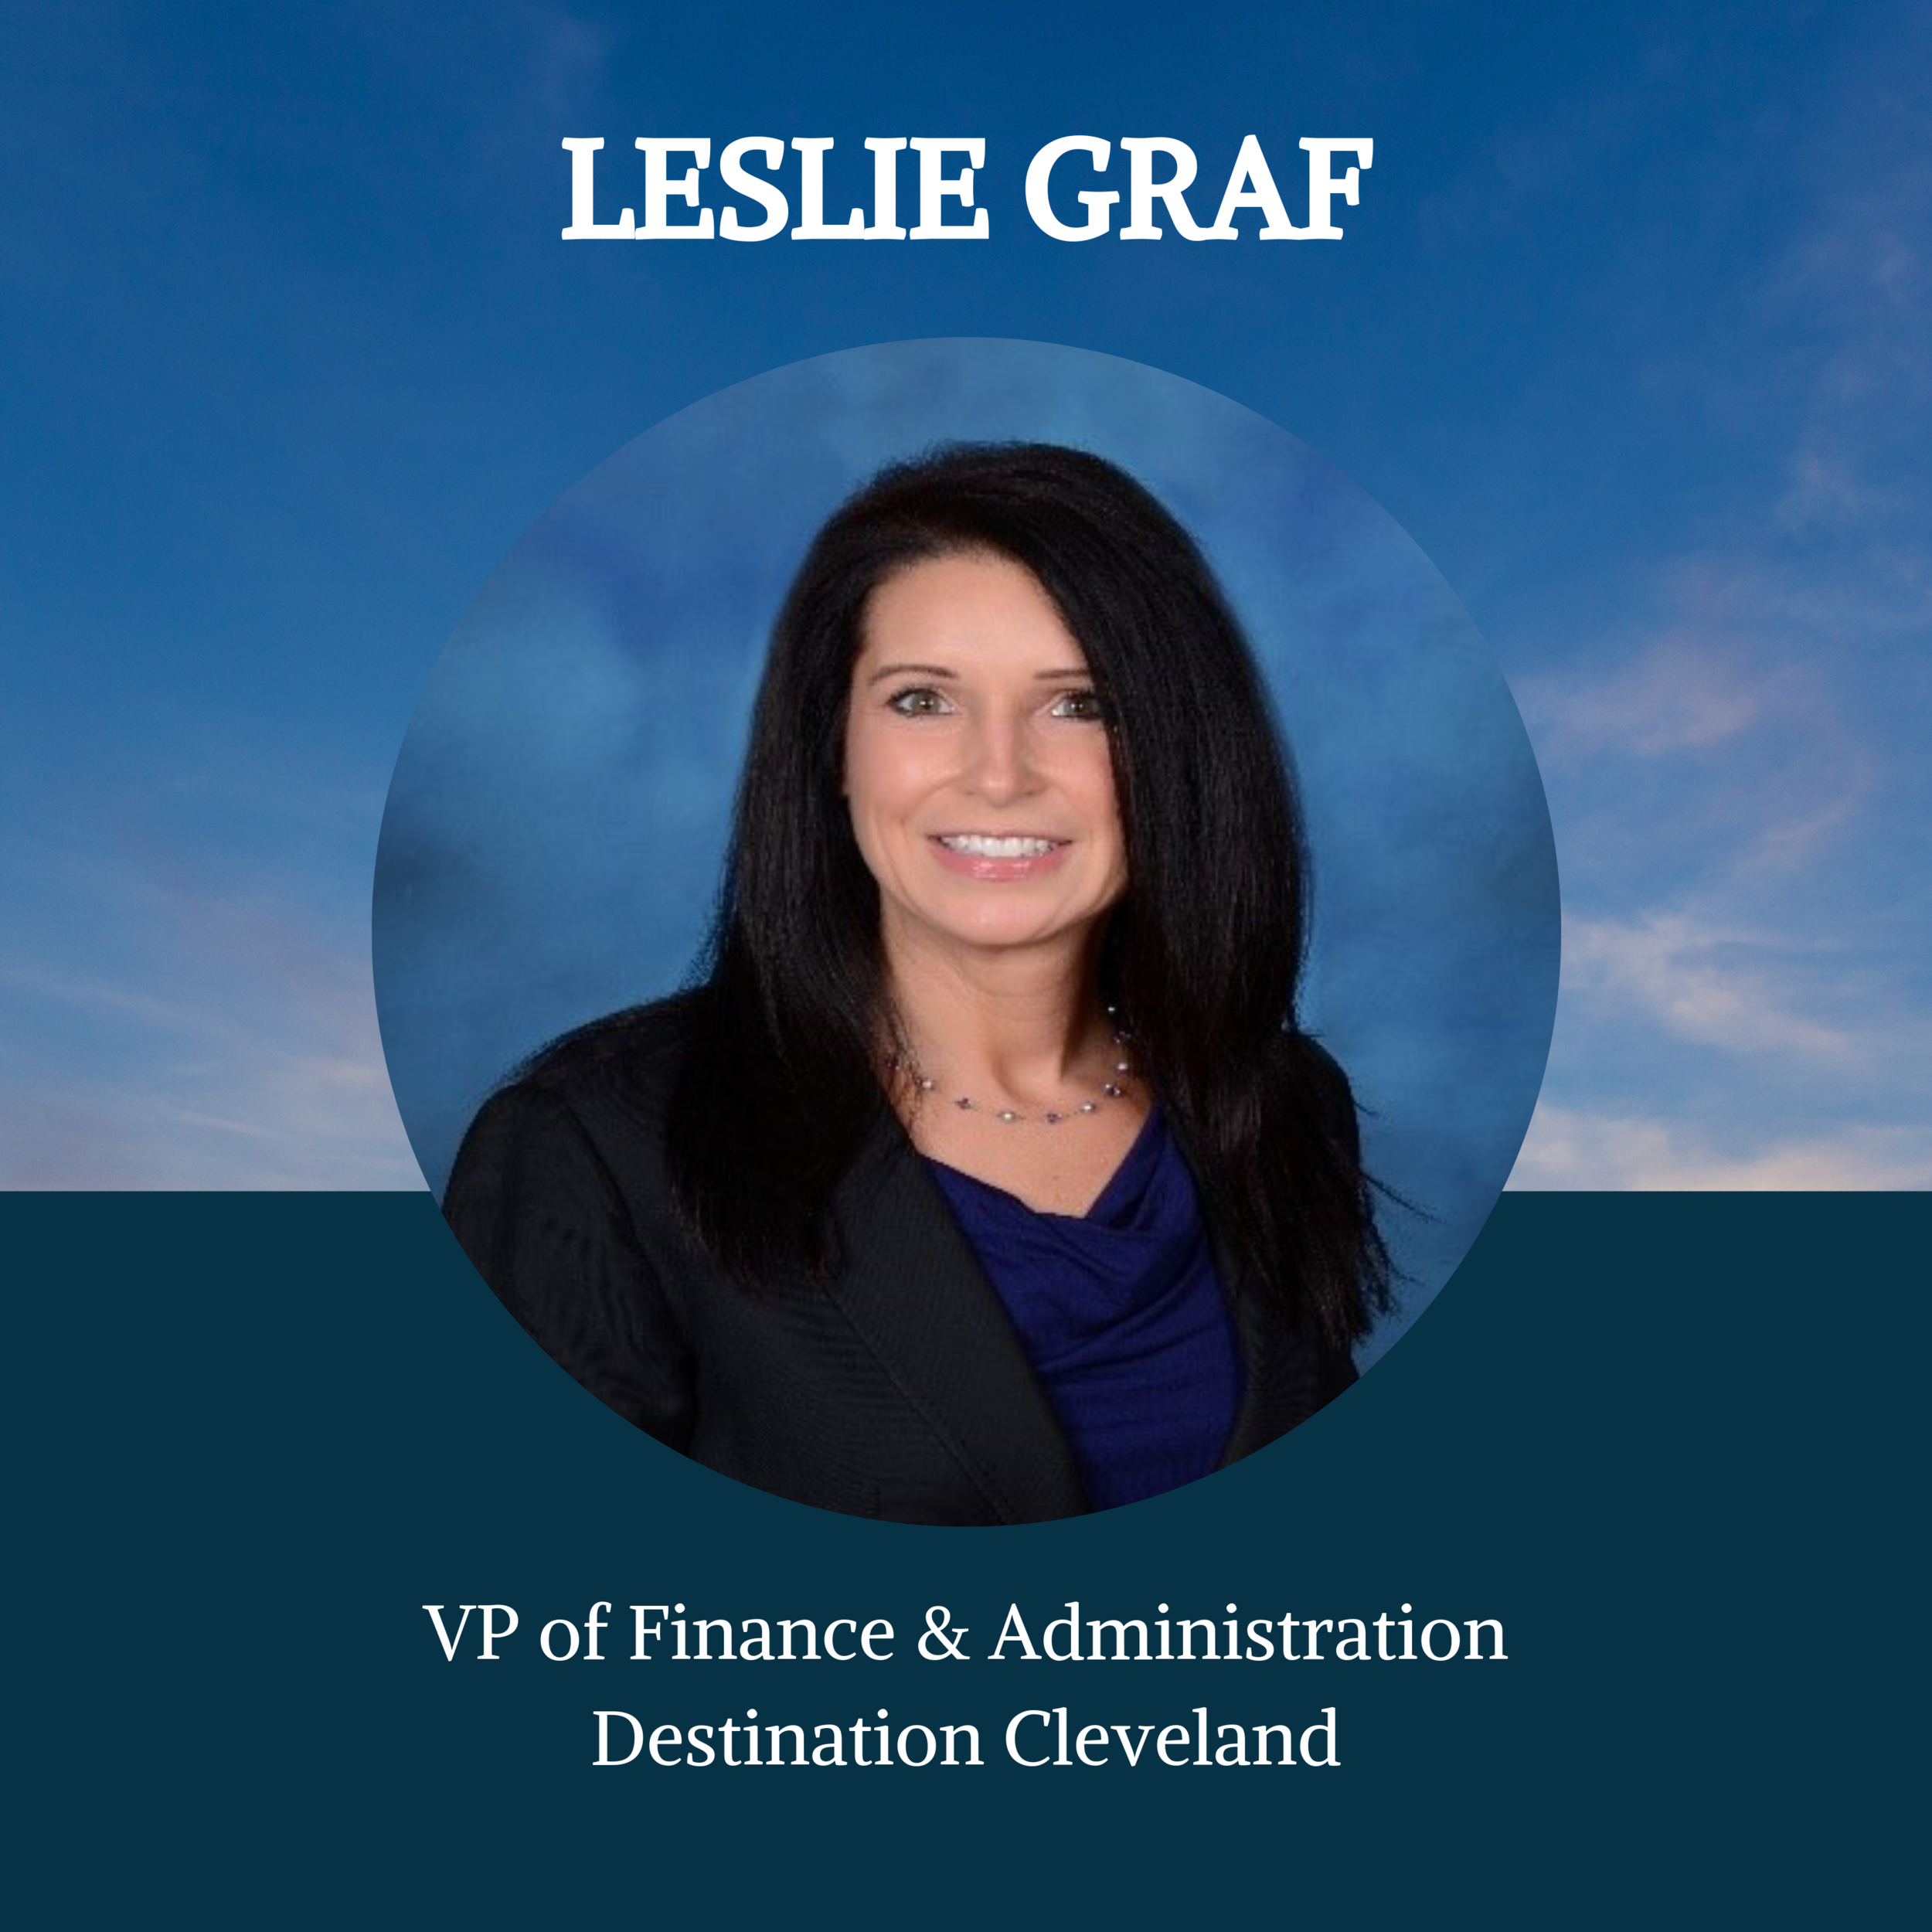 Leslie is the Vice President of Finance and Administration at Destination Cleveland where she applies her more than 20 years of experience in accounting, auditing, litigation consulting and destination management. She believes in the power of diverse culture, professionalism, and honesty in building a strong place to work. Leslie has applied those principles throughout her more than 15 years in the not-for-profit sector and more than 10 years in the travel and tourism industry. Leslie provides sound financial guidance to CEOs, partners and boards of directors and has dedicated her career to building strong internal controls to mitigate the risk of fraud. She stays up to date on the latest accounting pronouncements to maintain financial statements in accordance with the GAAP and leads teams through honesty and trust to allow people to grow professionally and advance in their careers.